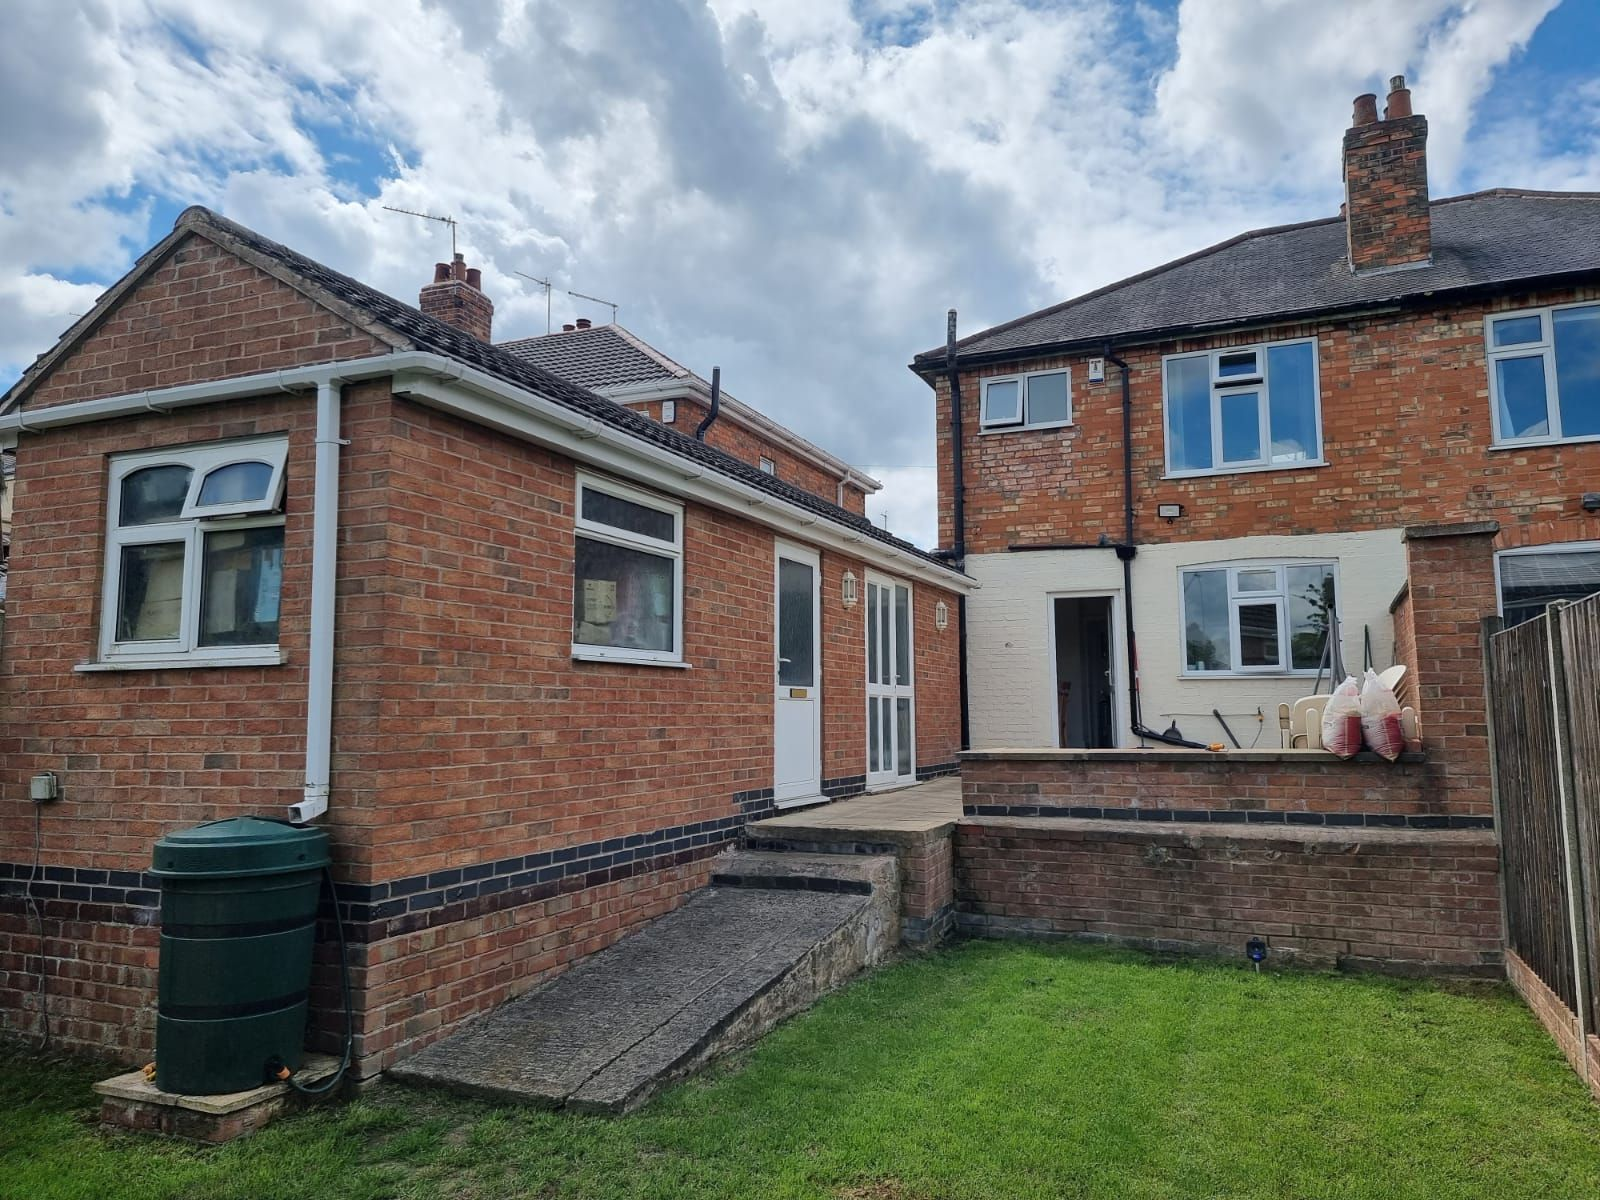 3 bedroom semi-detached house SSTC in Leicester - Photograph 16.